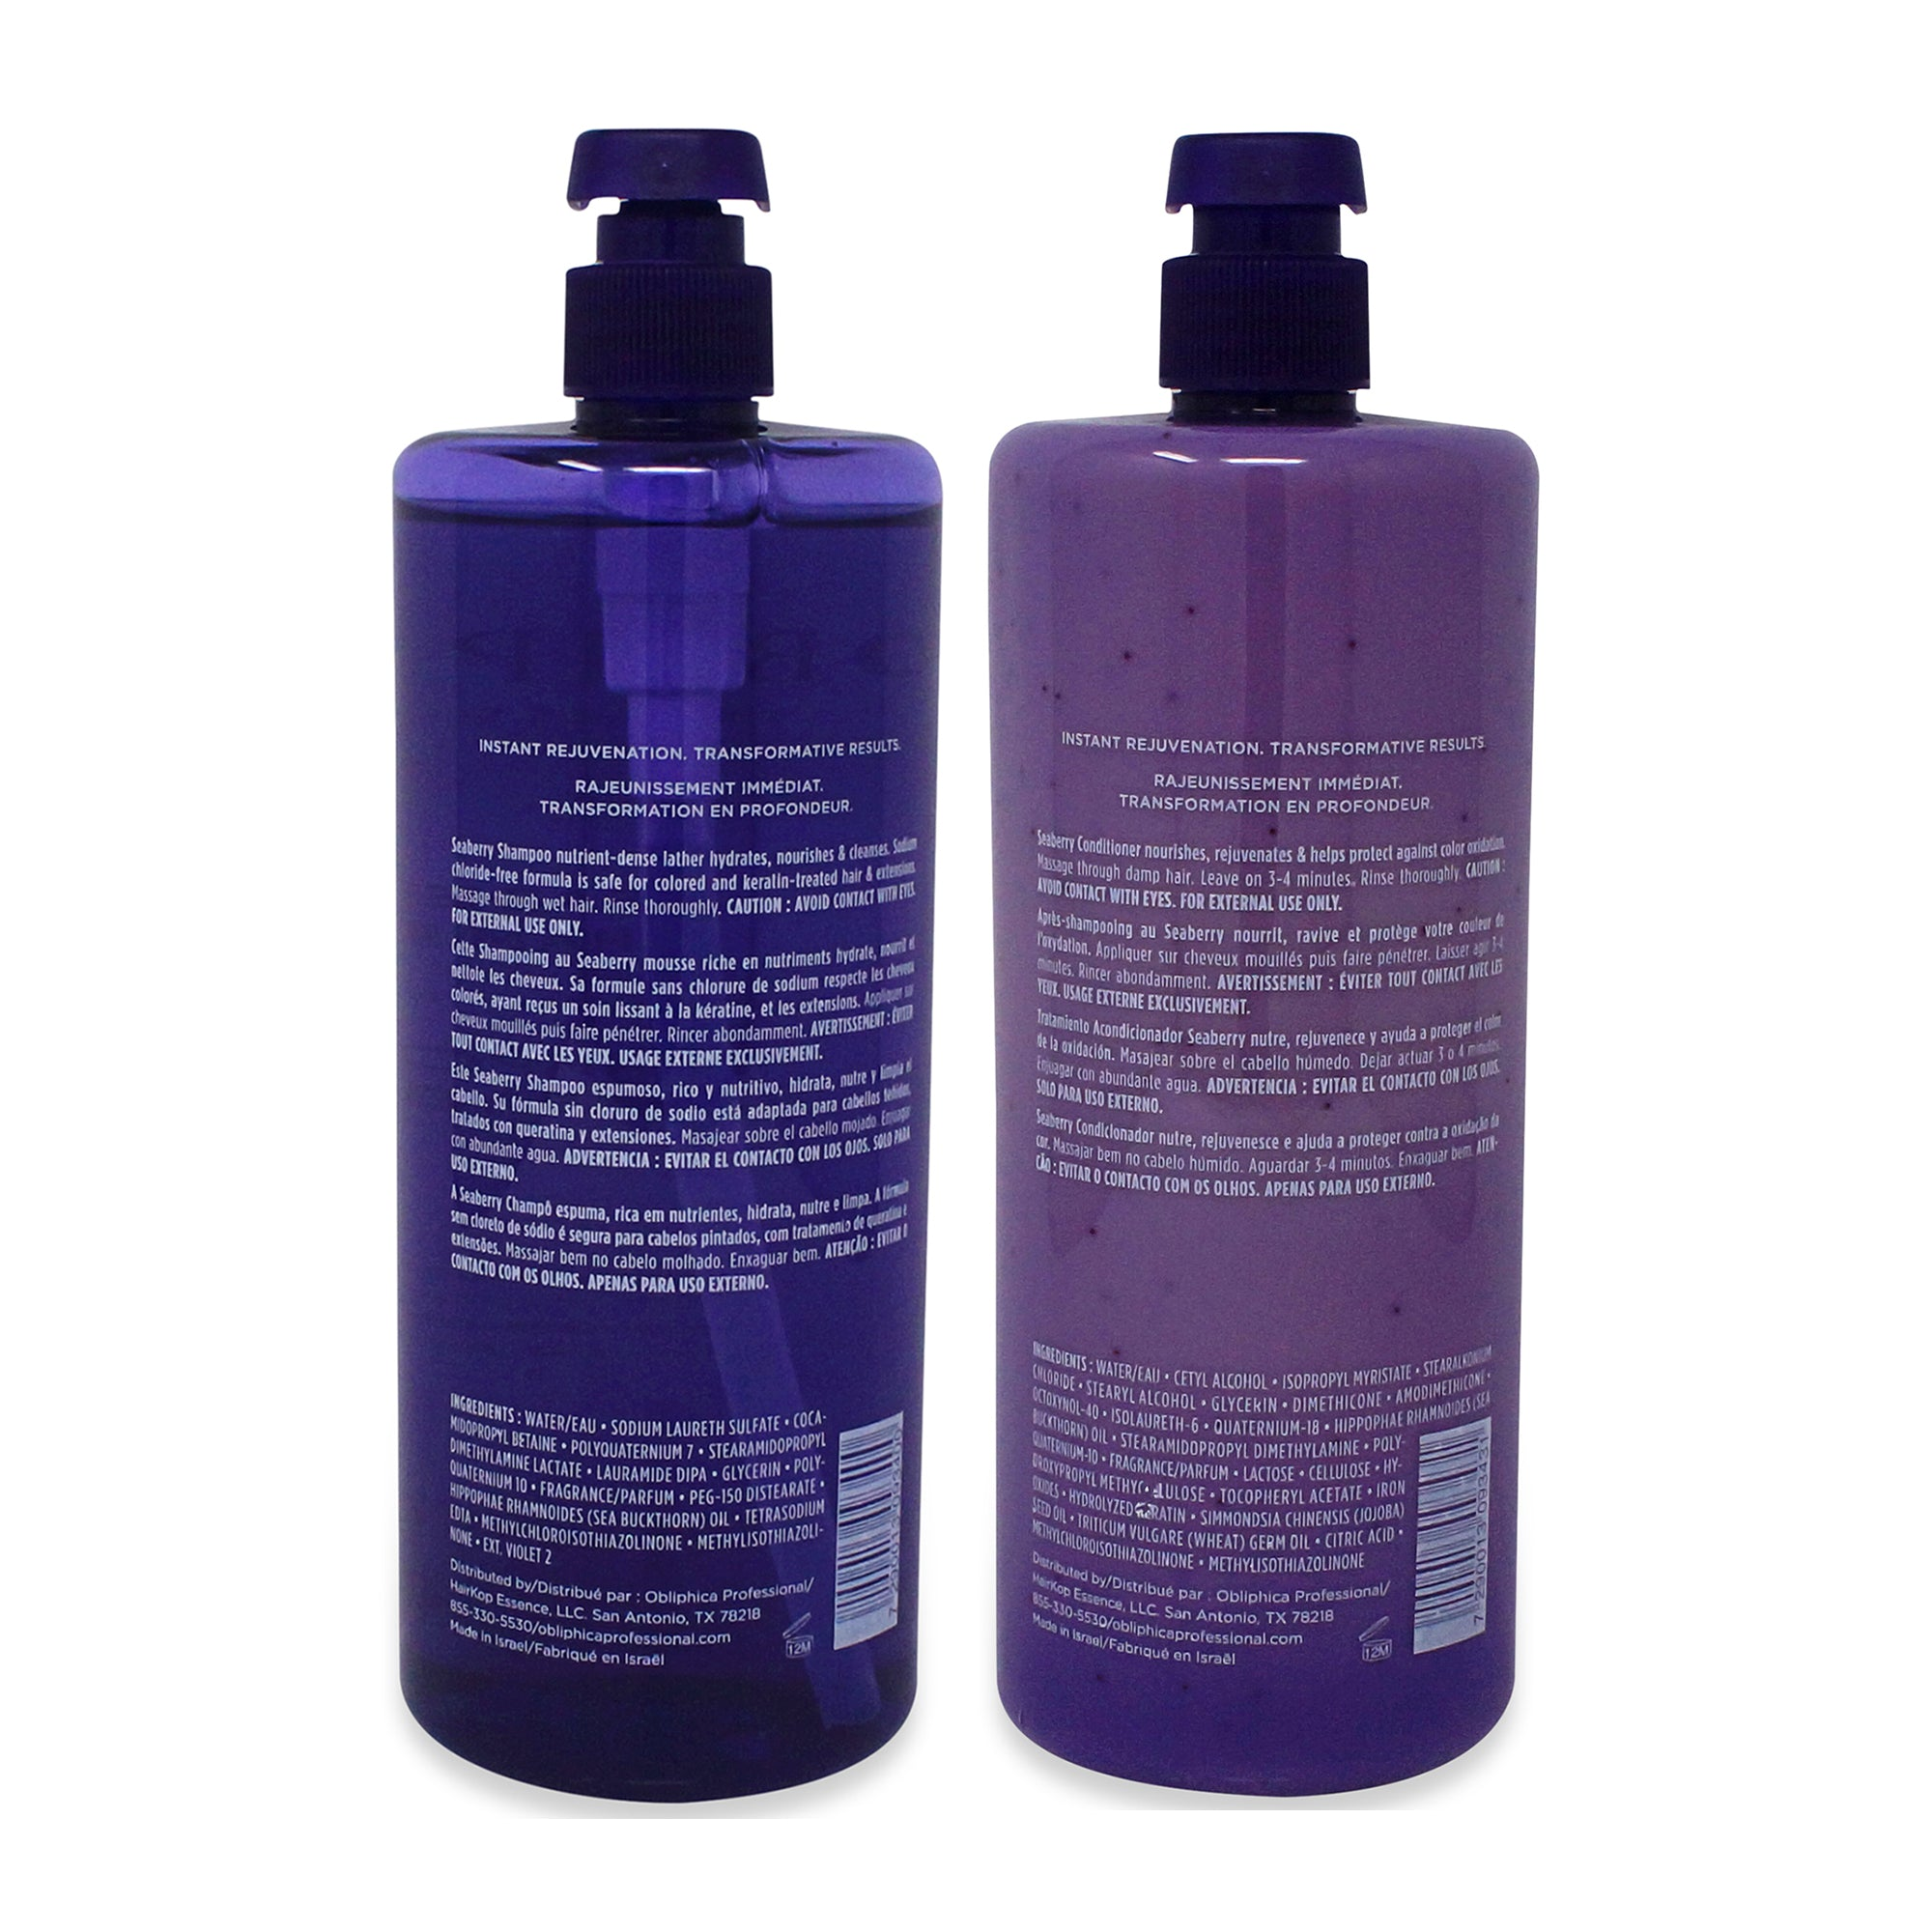 Obliphica Professional Seaberry Shampoo & Conditioner, Medium to Coarse 33.8 oz Combo Pack